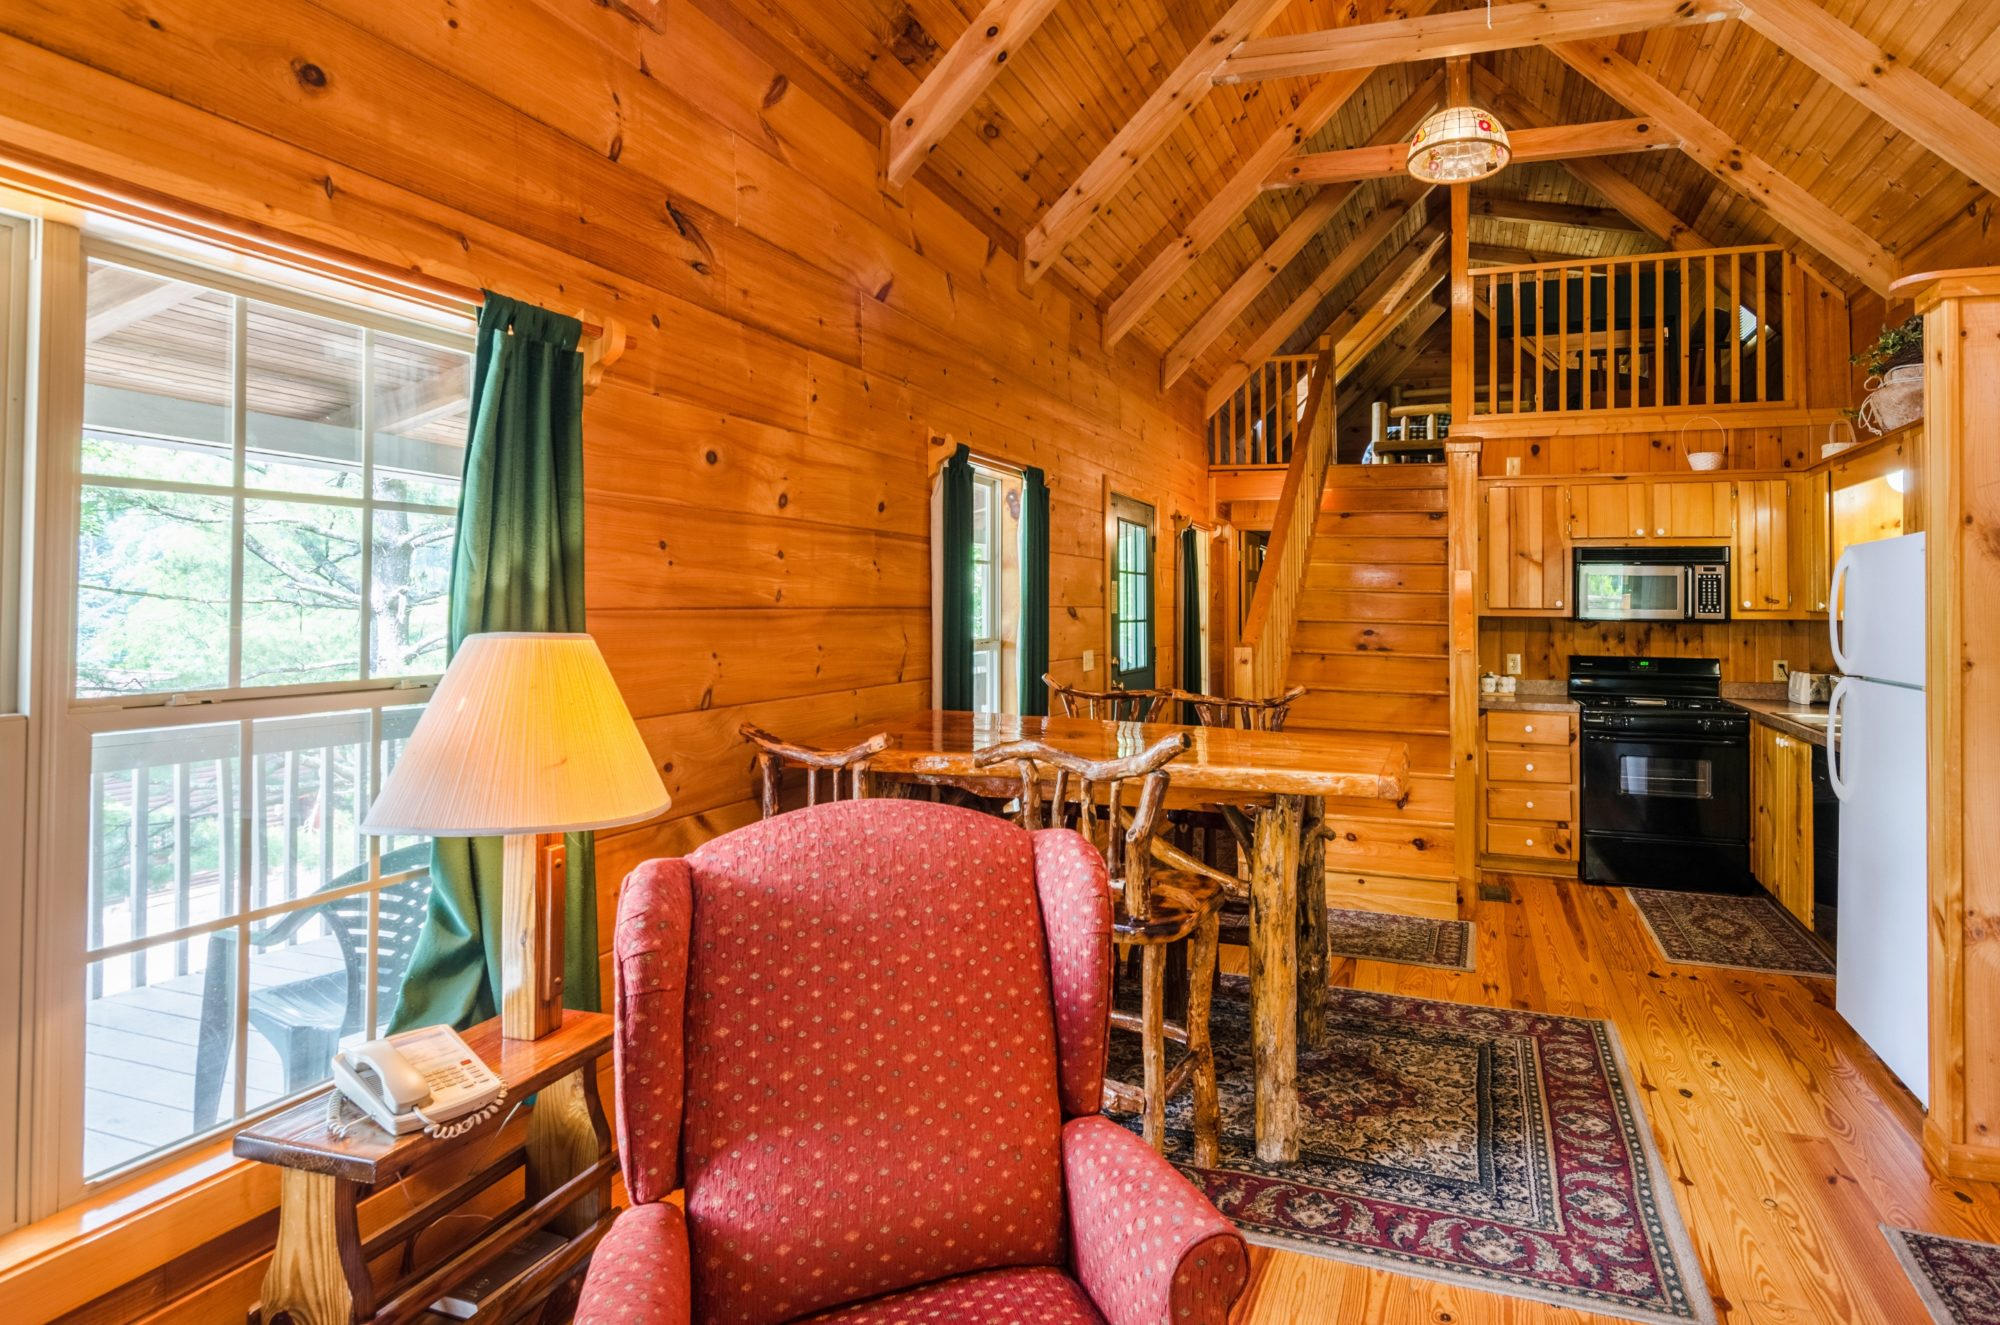 Wood panelled walls, wooden magazine rack with shelf and lamp, winged easy chair, entrance door in side hallway, wooden stairs leading to loft bedroom area, kitchen area with stove, microwave over stove, toaster, double sink, fridge freezer, wooden floor and large rugs